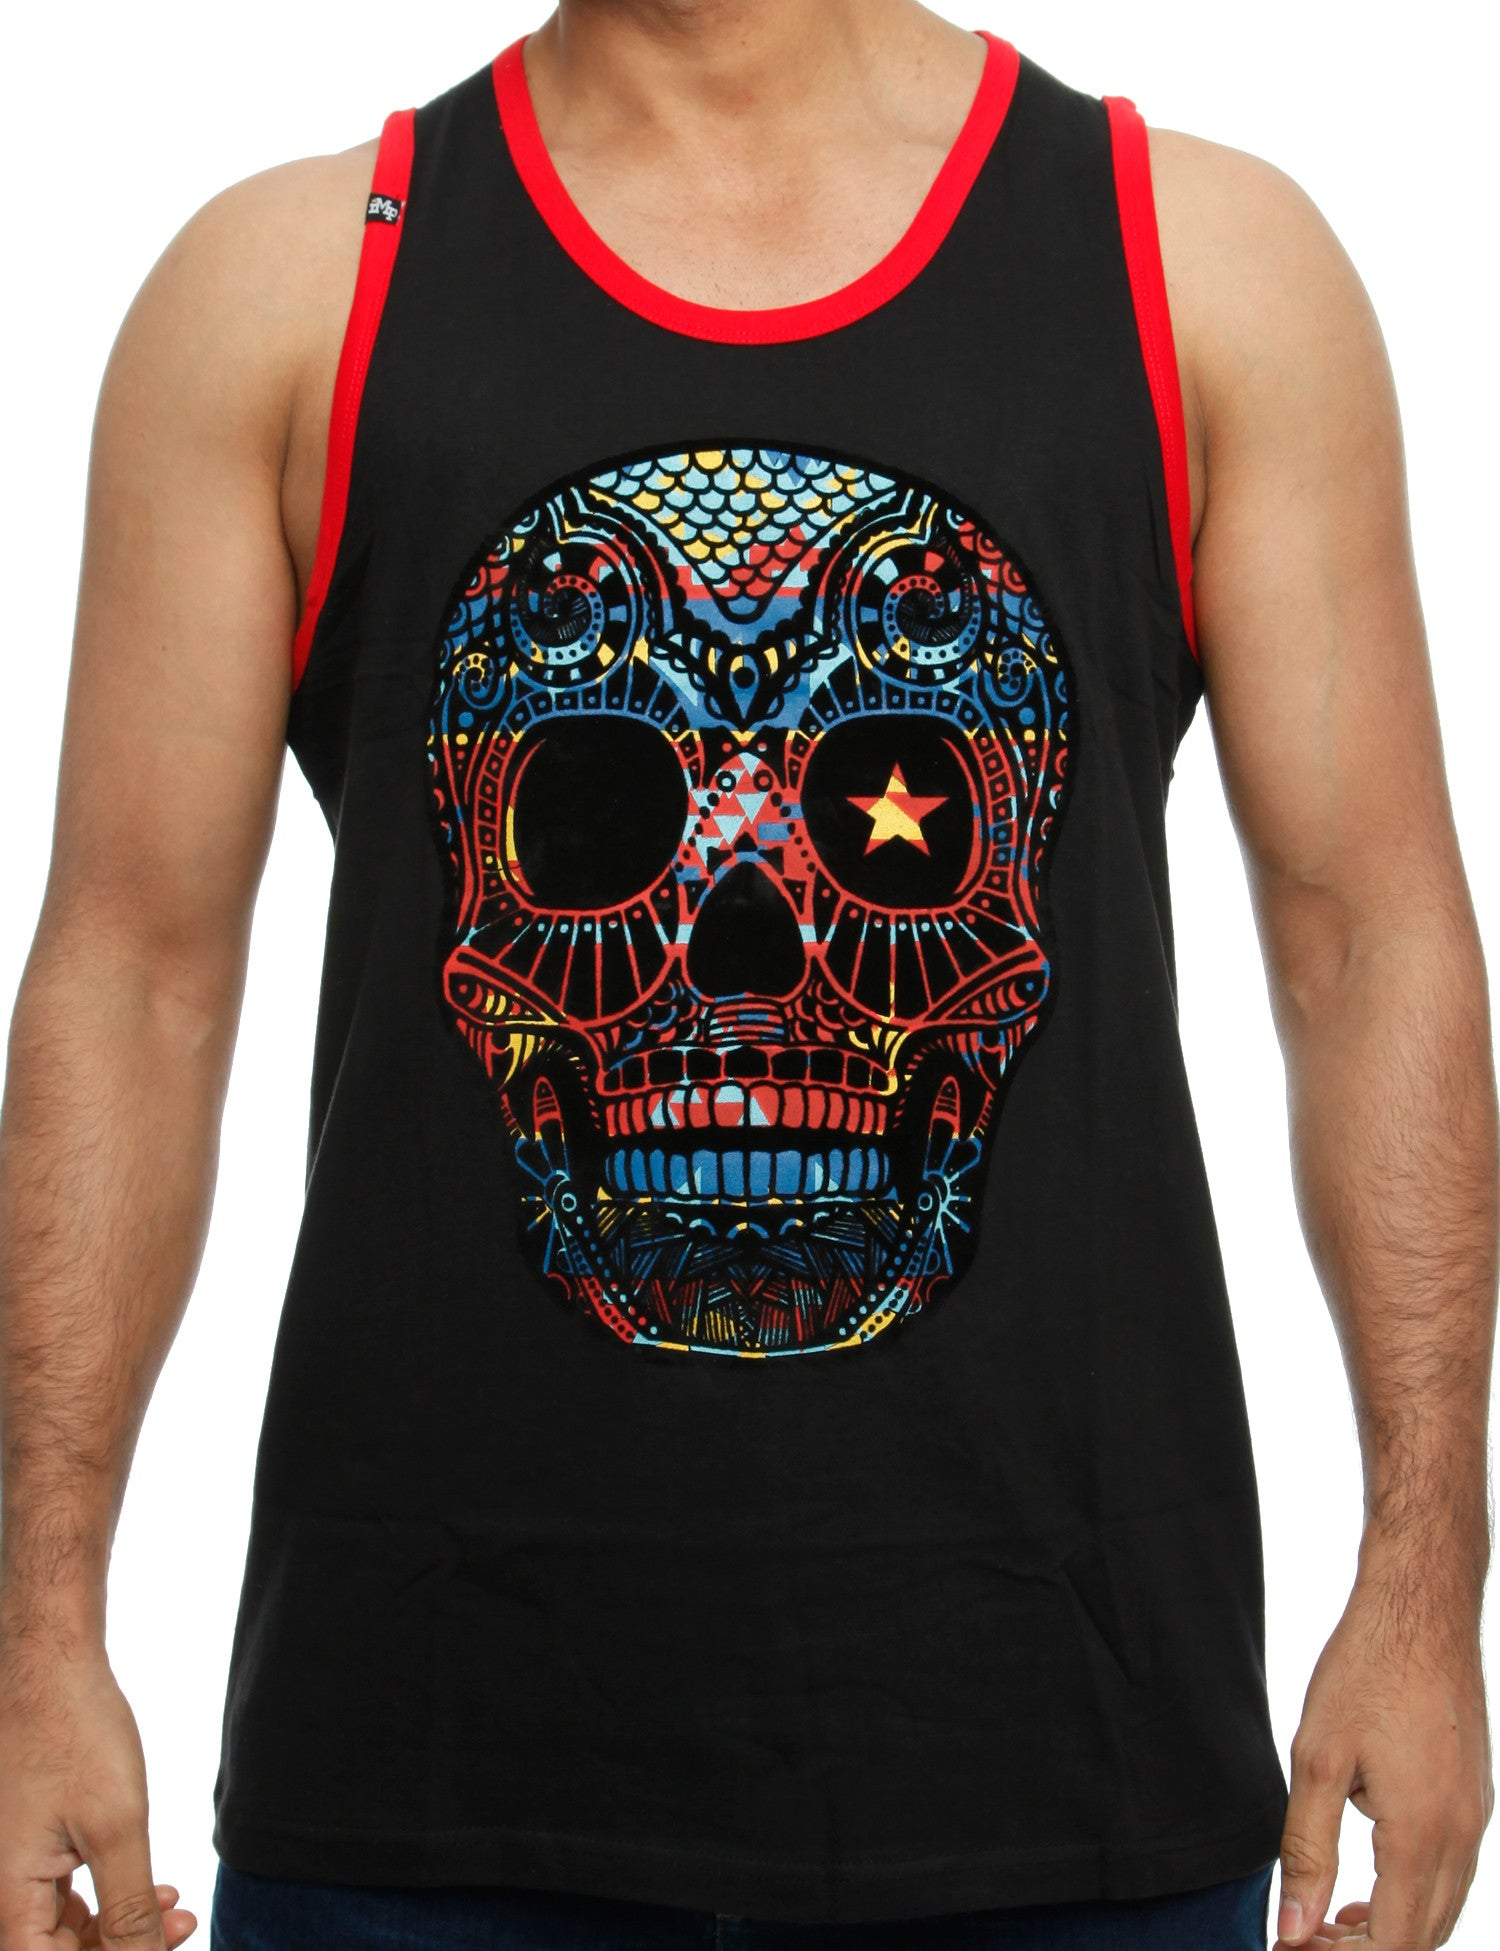 Imperious Tank Top TT23 Black